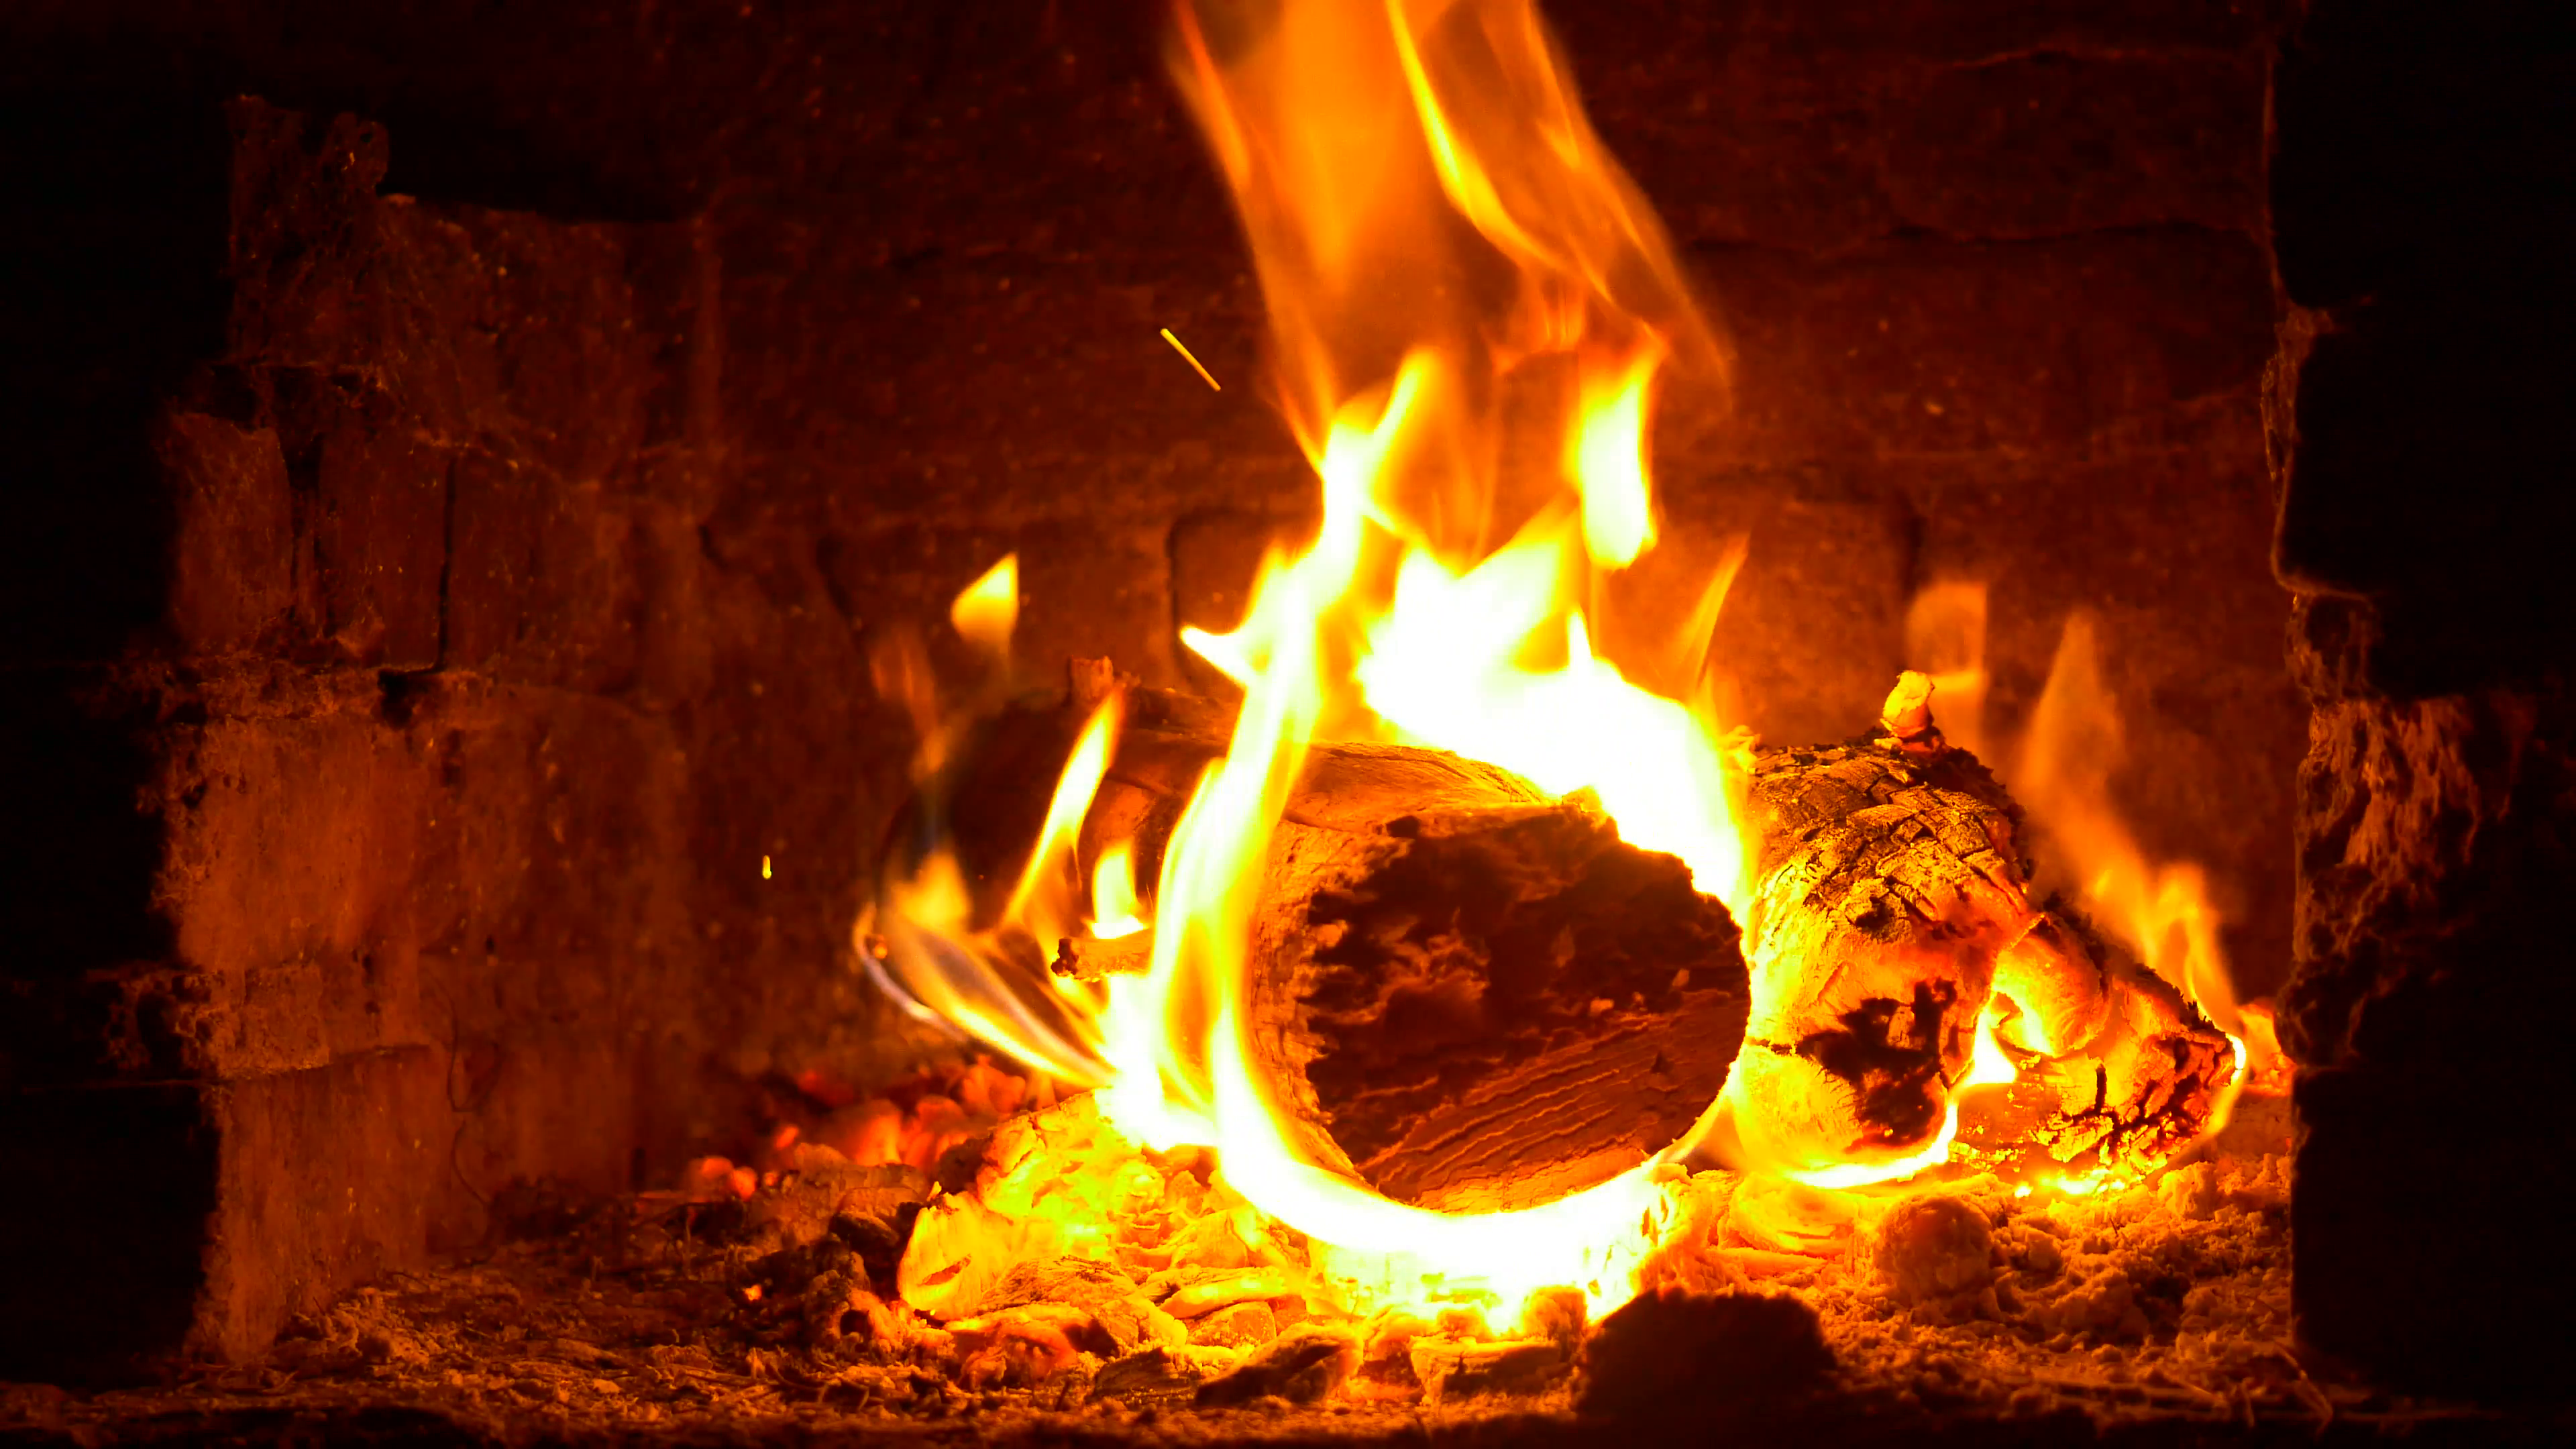 A warm fire in a chimney. 4K. Burning wood in the fireplace and the ...